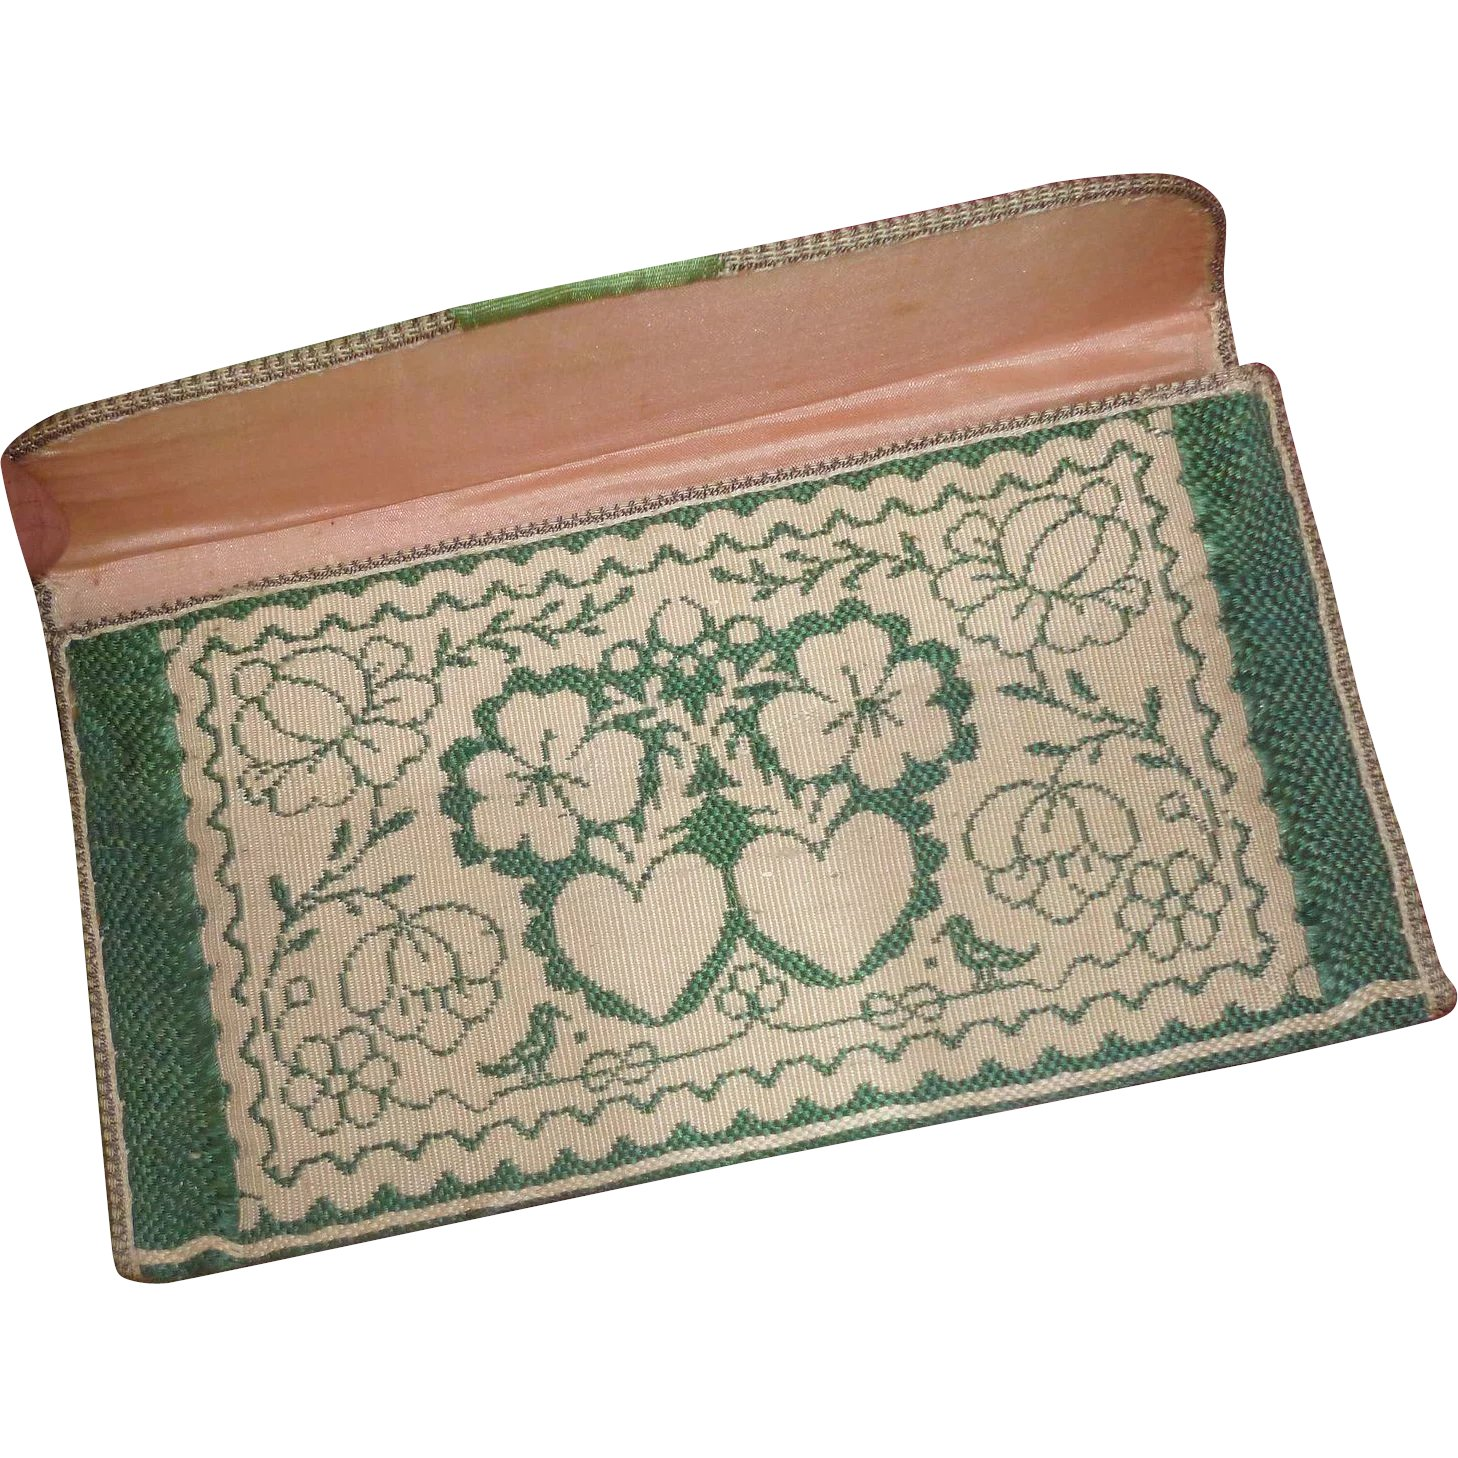 b1534f40 Exquisite antique French ladies green pocketbook : wallet : 2 hearts :  French faded-grandeur | Ruby Lane